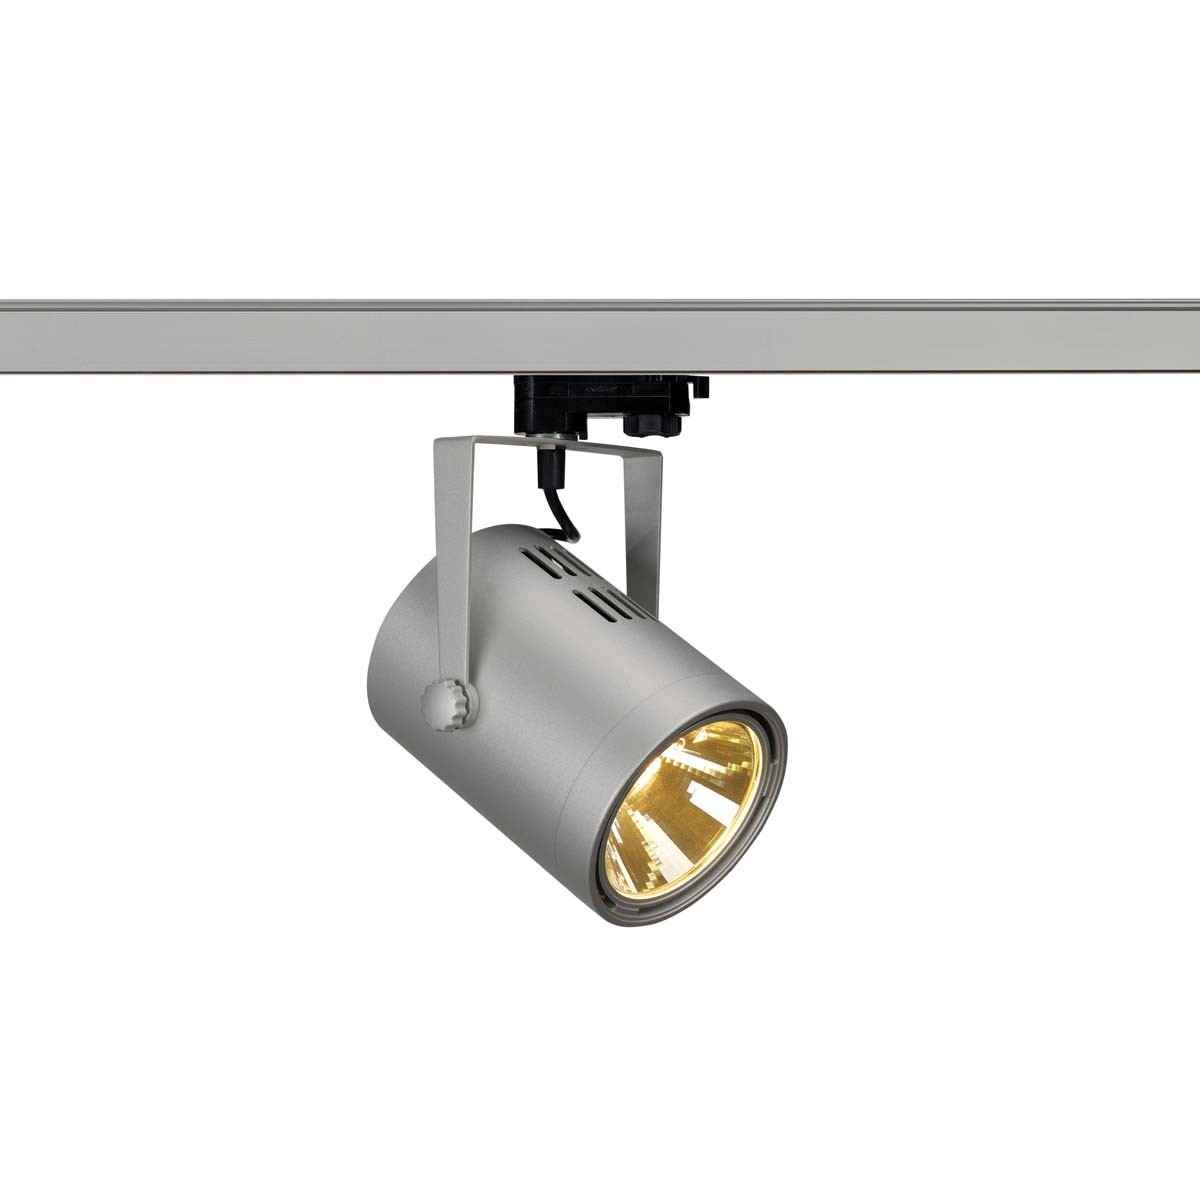 SLV 153814 Euro Spot LED 20W 3000K Eutrac 3 Circuit Track Light Silver Grey DIMMABLE